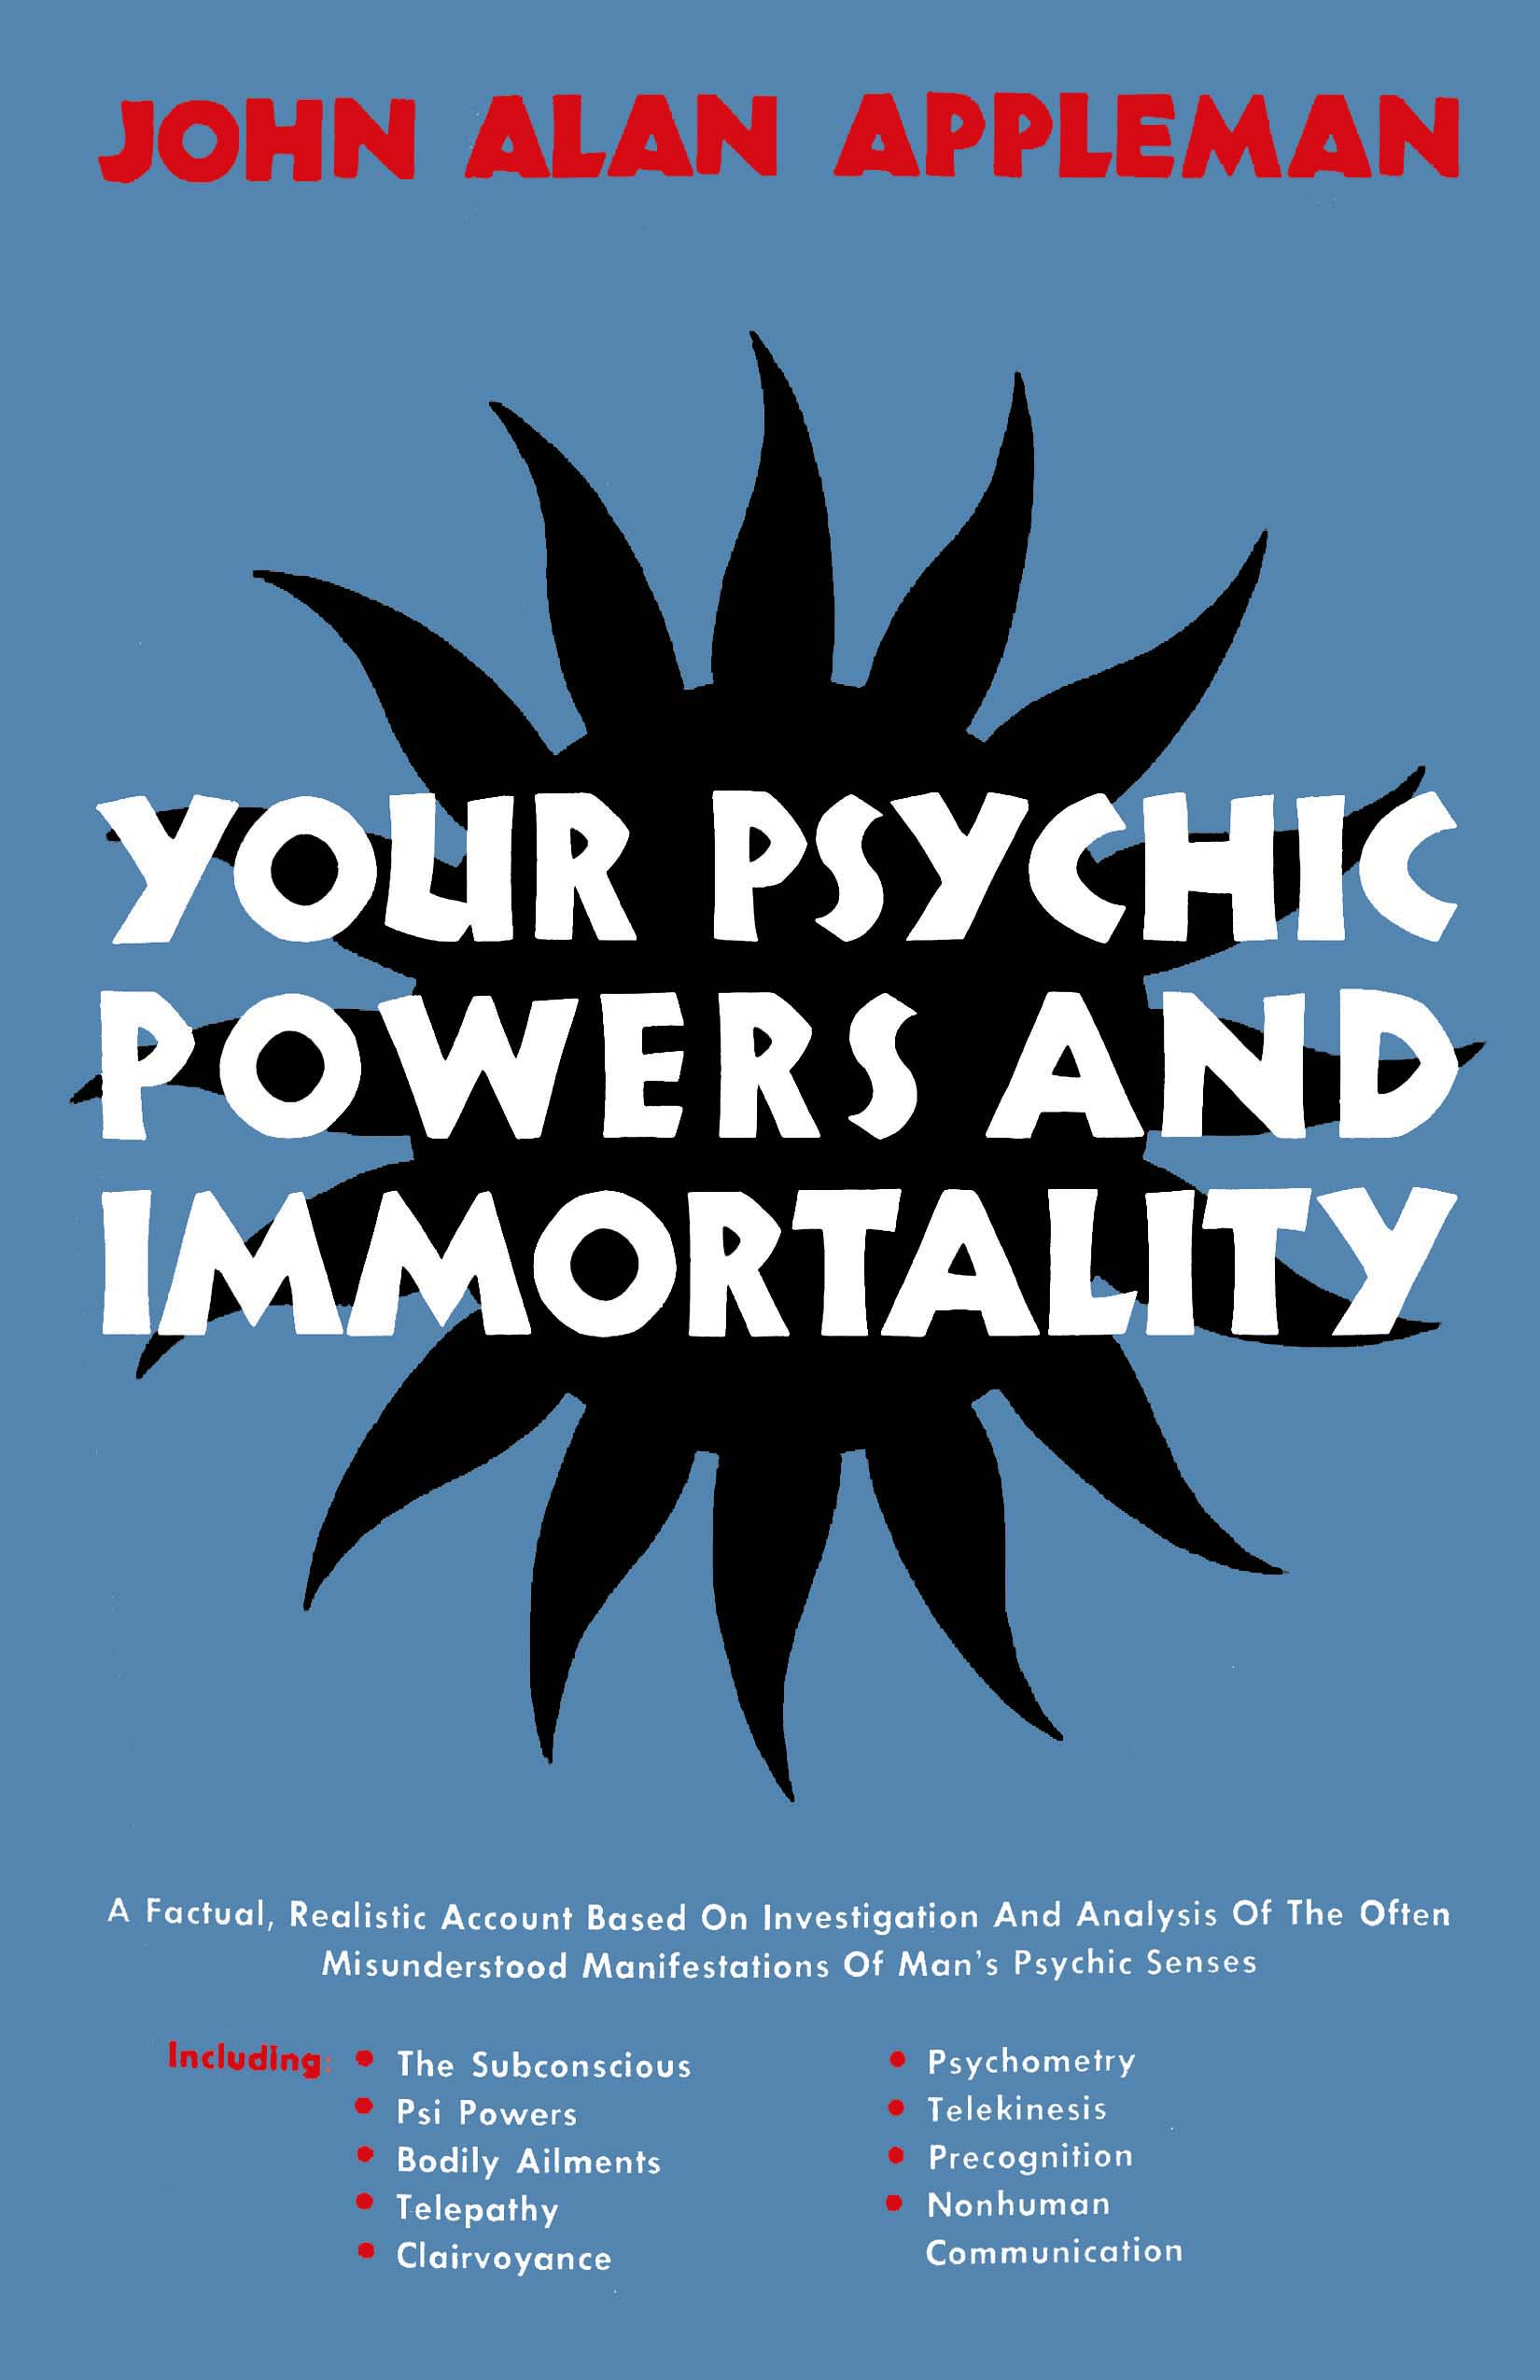 Your Psychic Powers and Immortality